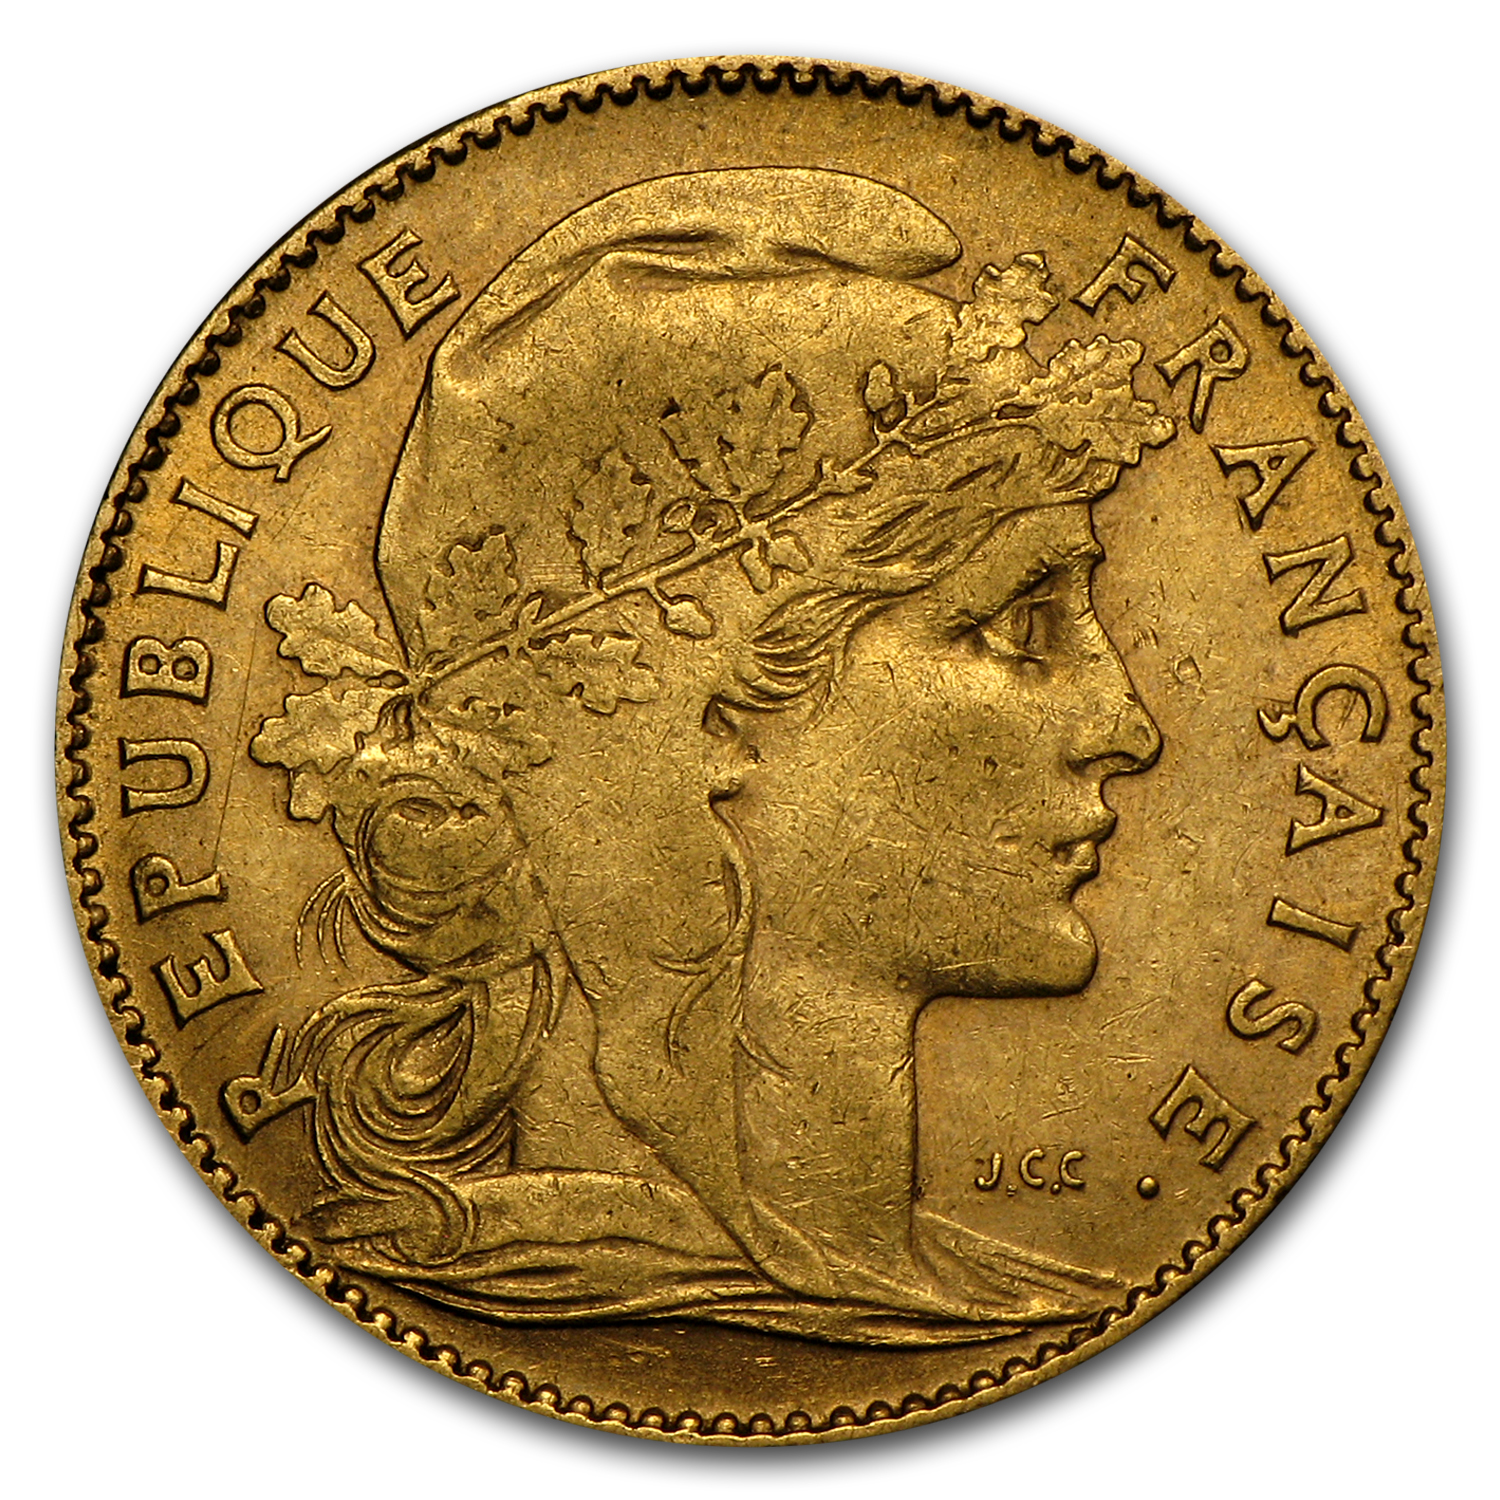 France Gold 10 Francs (Rooster) (Average Circulated)